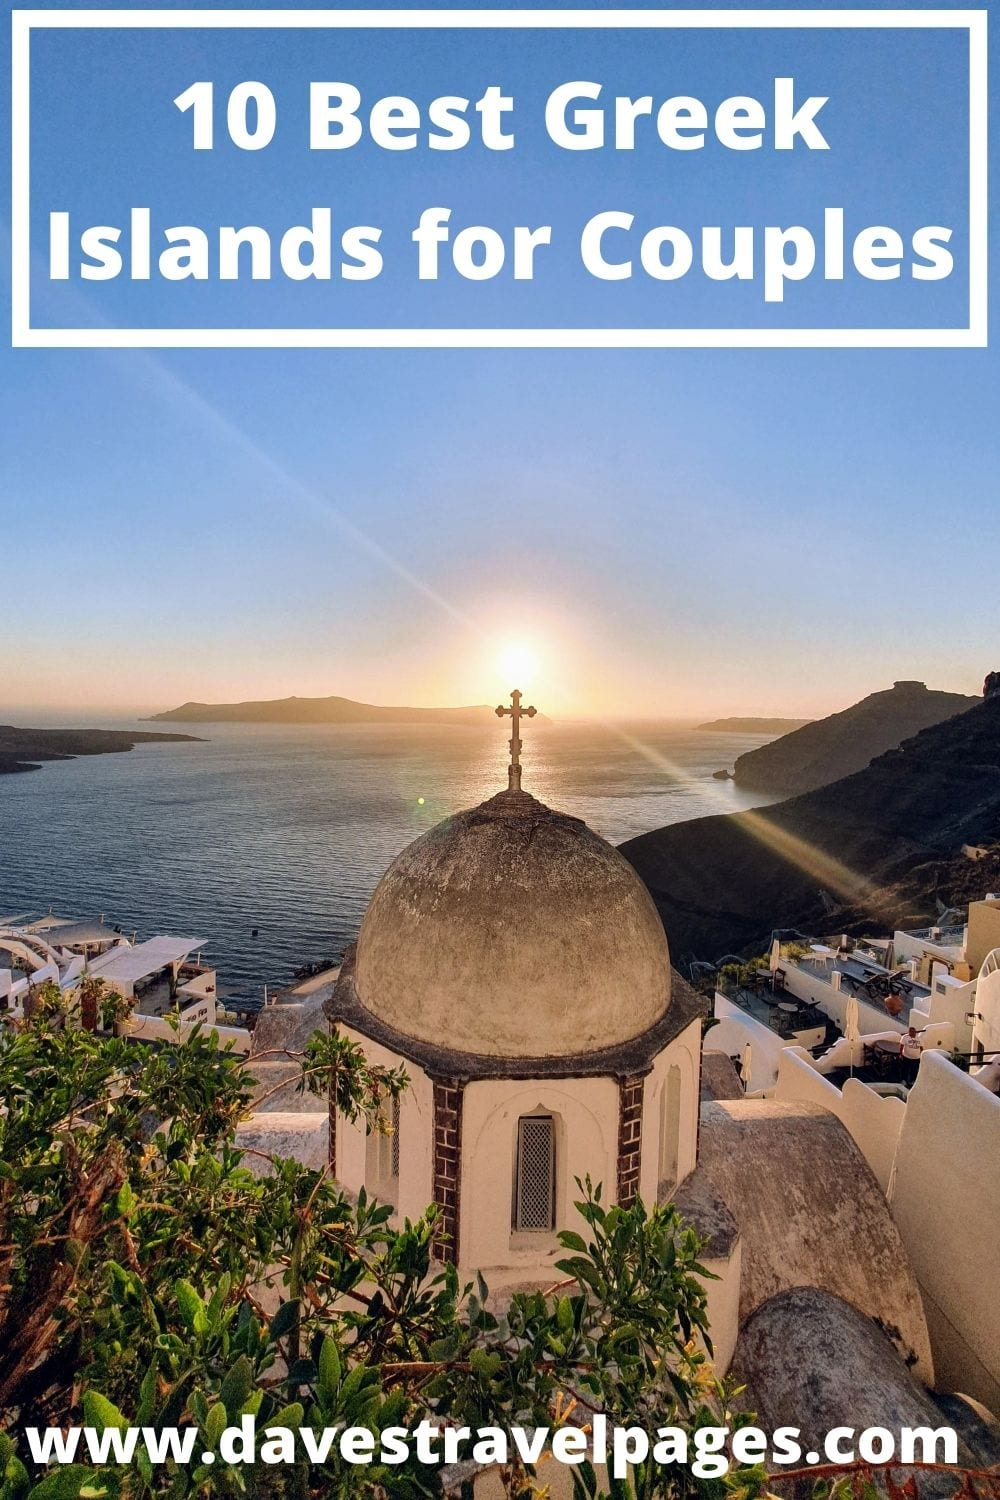 10 Best Greek Islands for Couples